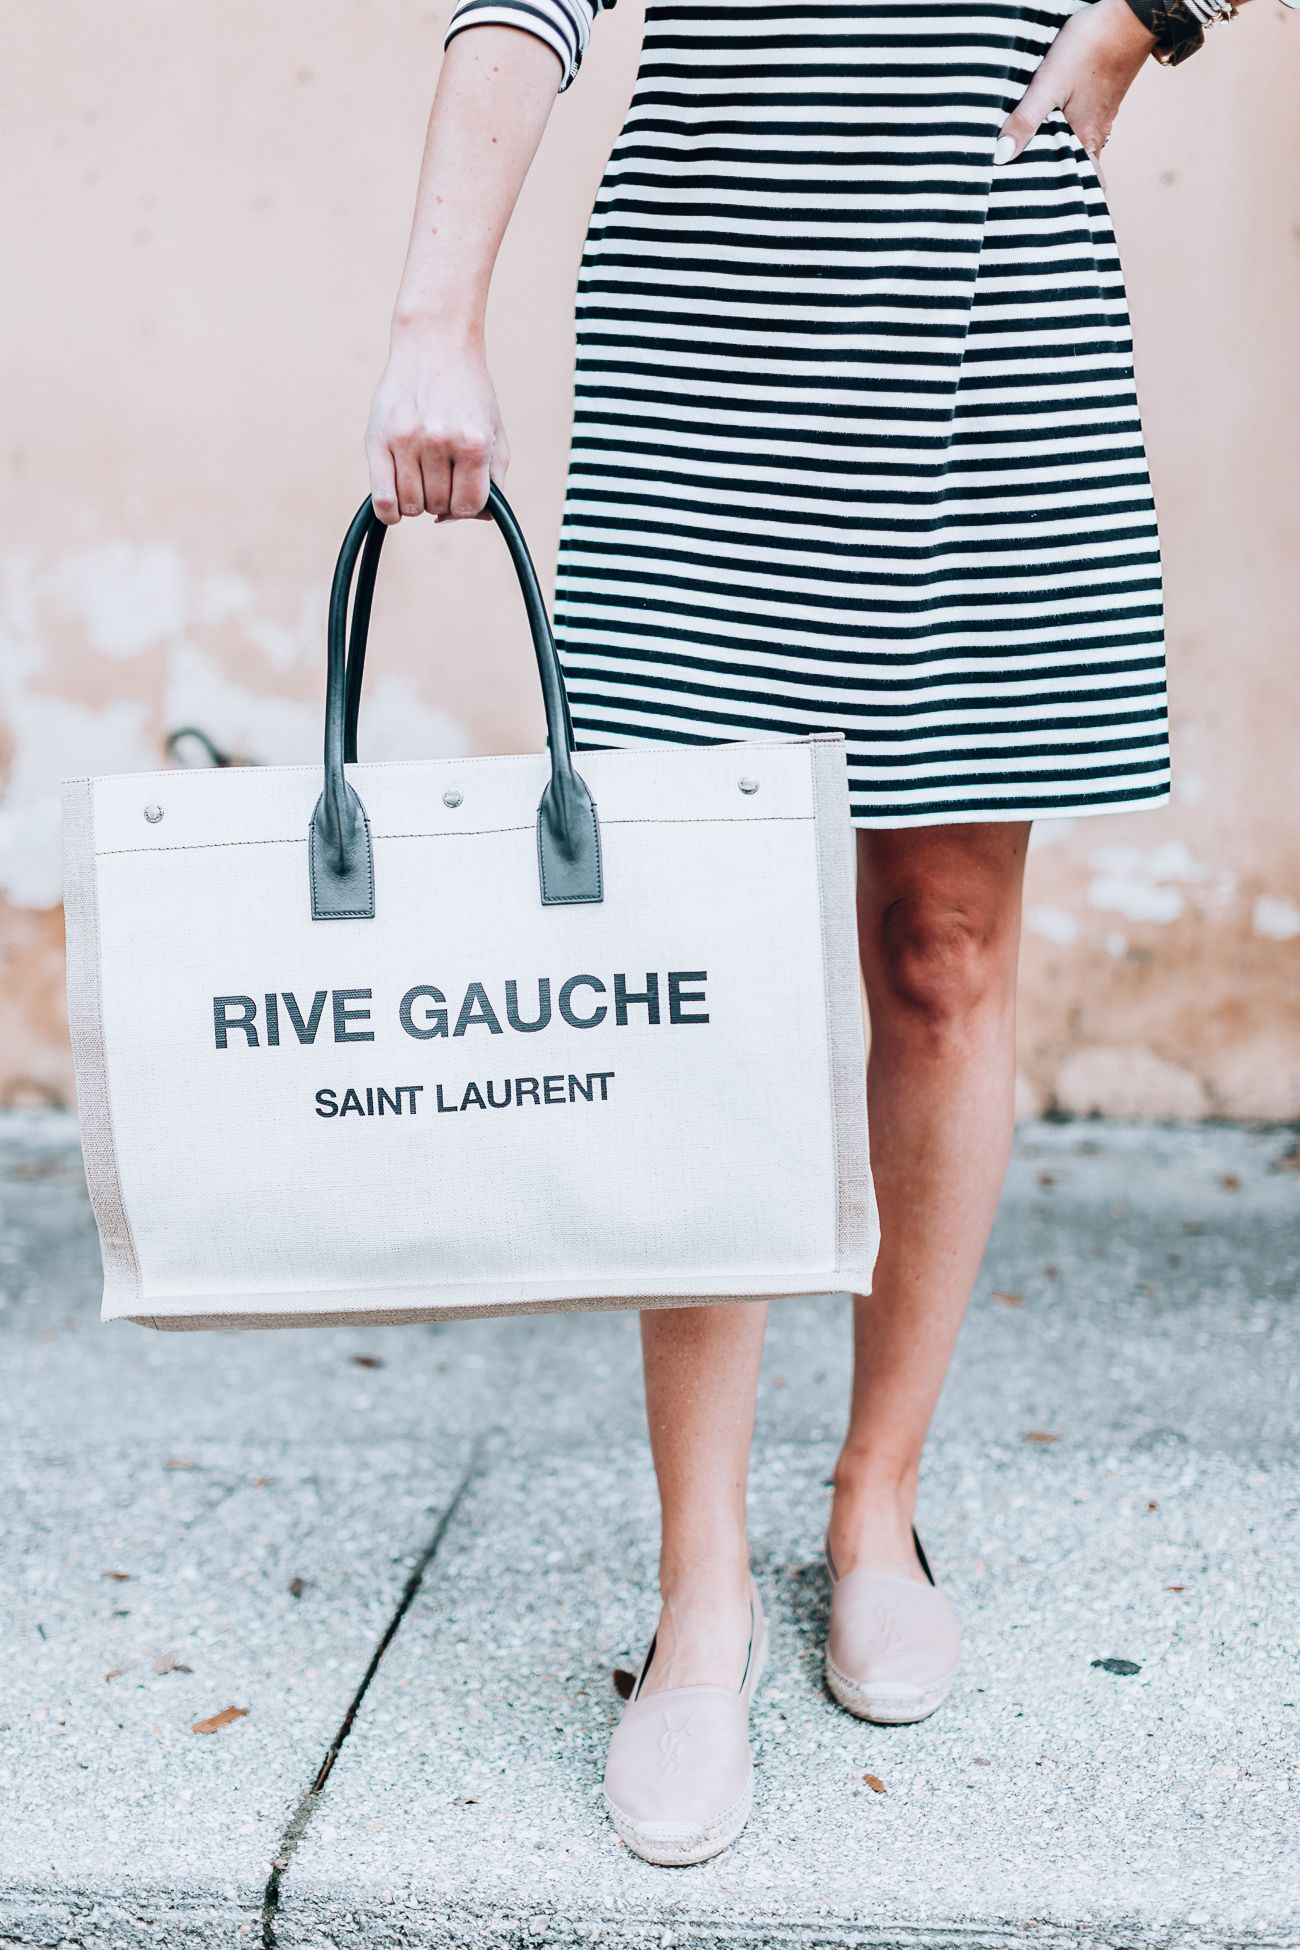 6e00be30318 Luxury Designer Review | YSL Espadrille and Saint Laurent Noe Rive Gauche  Linen Tote - SHOP DANDY | A florida based style and beauty blog by Danielle